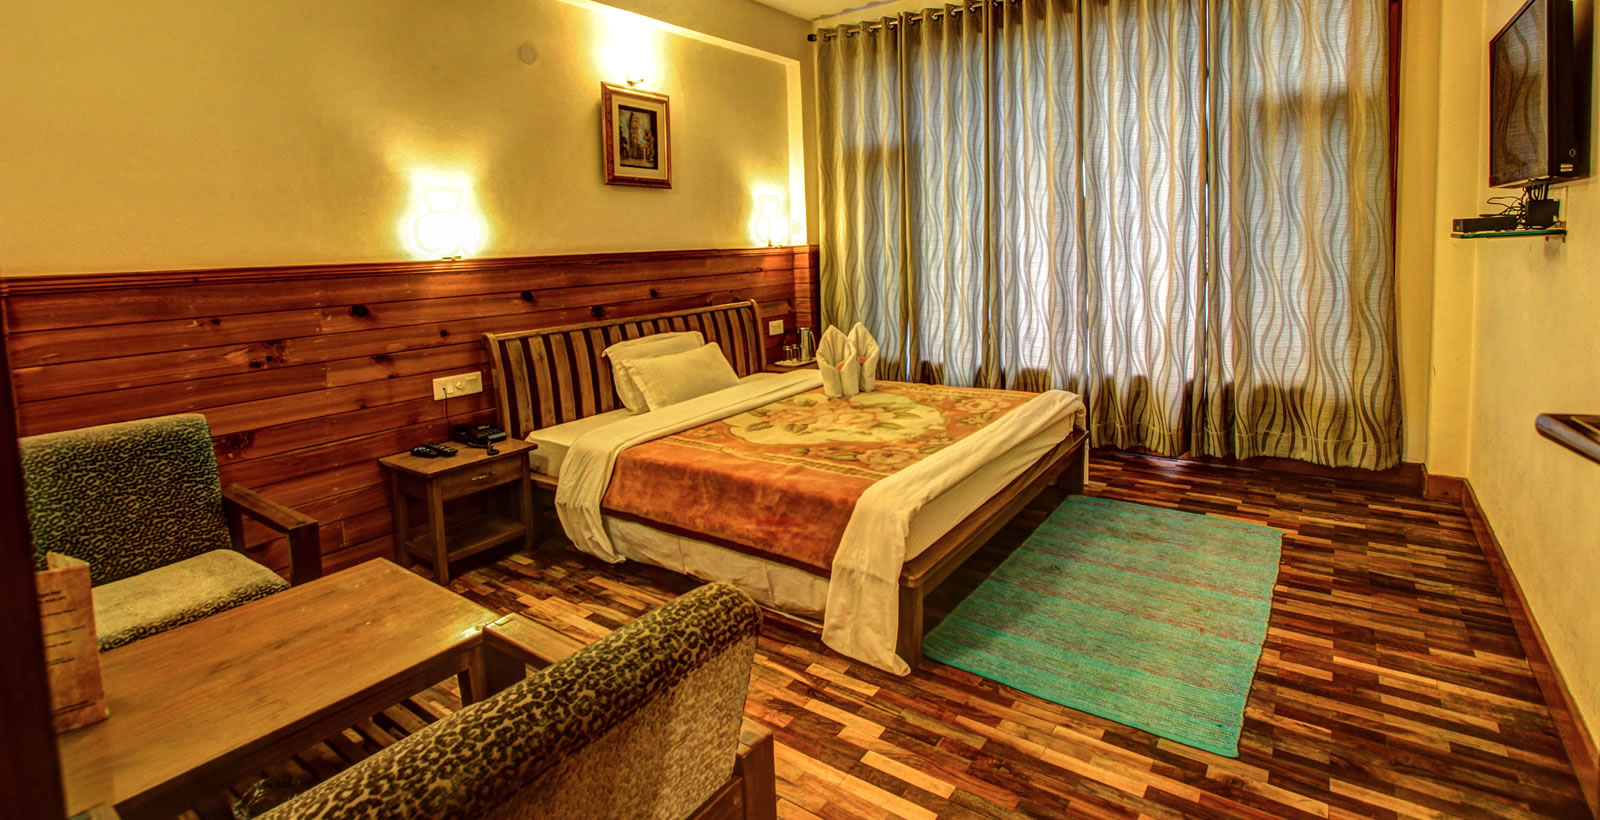 Keylinga Inn Hotel Rooms In Manali Kullu Valley Homestay Inncom Room Wiring Diagram Family Suites